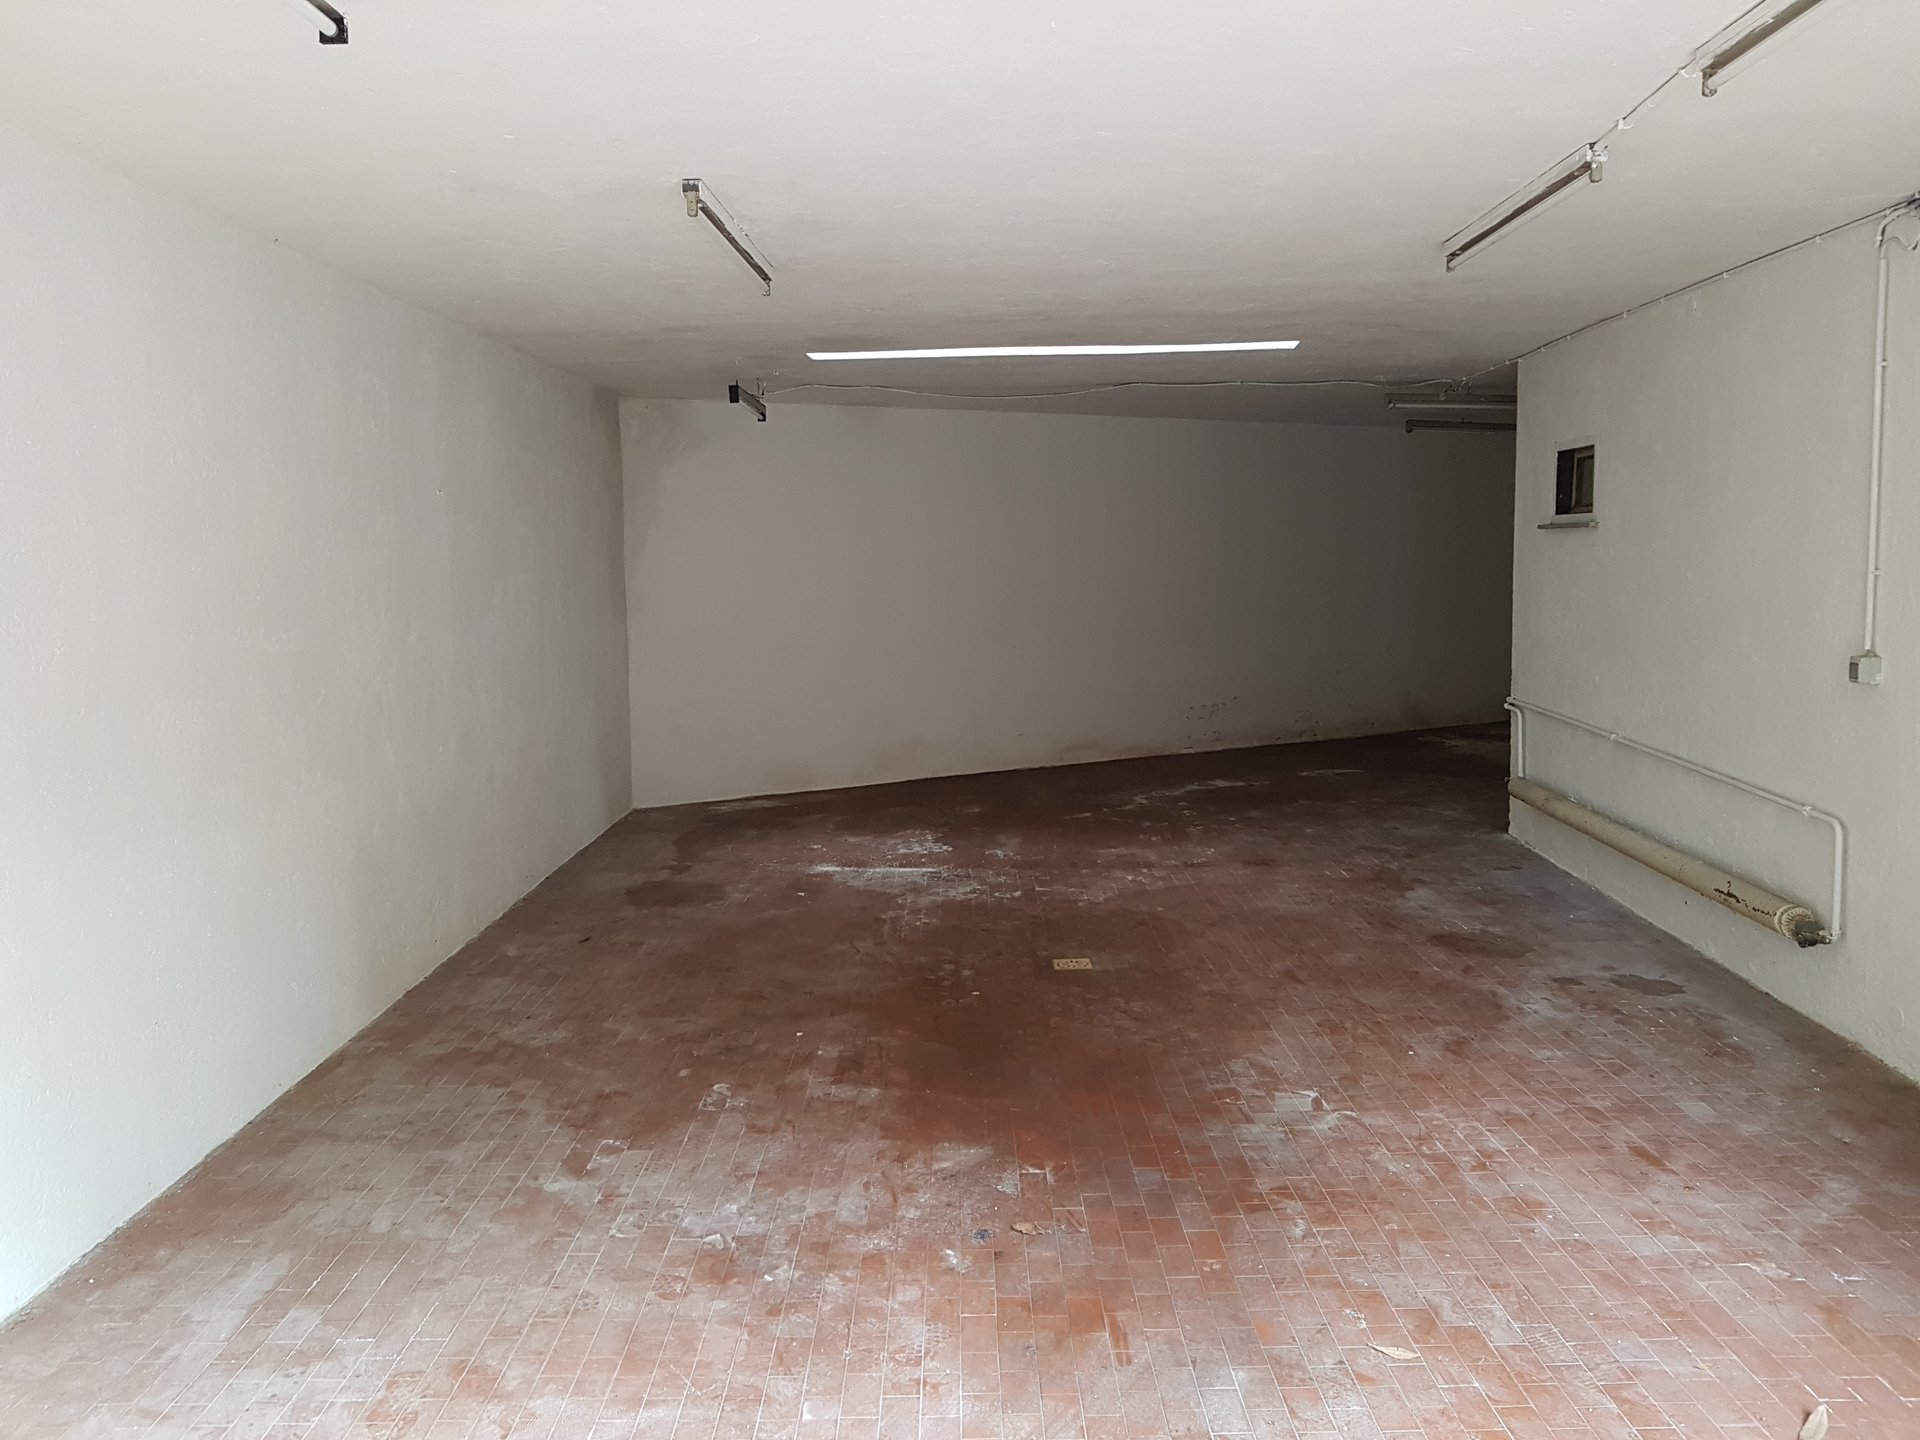 Garage for sale in the centre of Stresa-inner